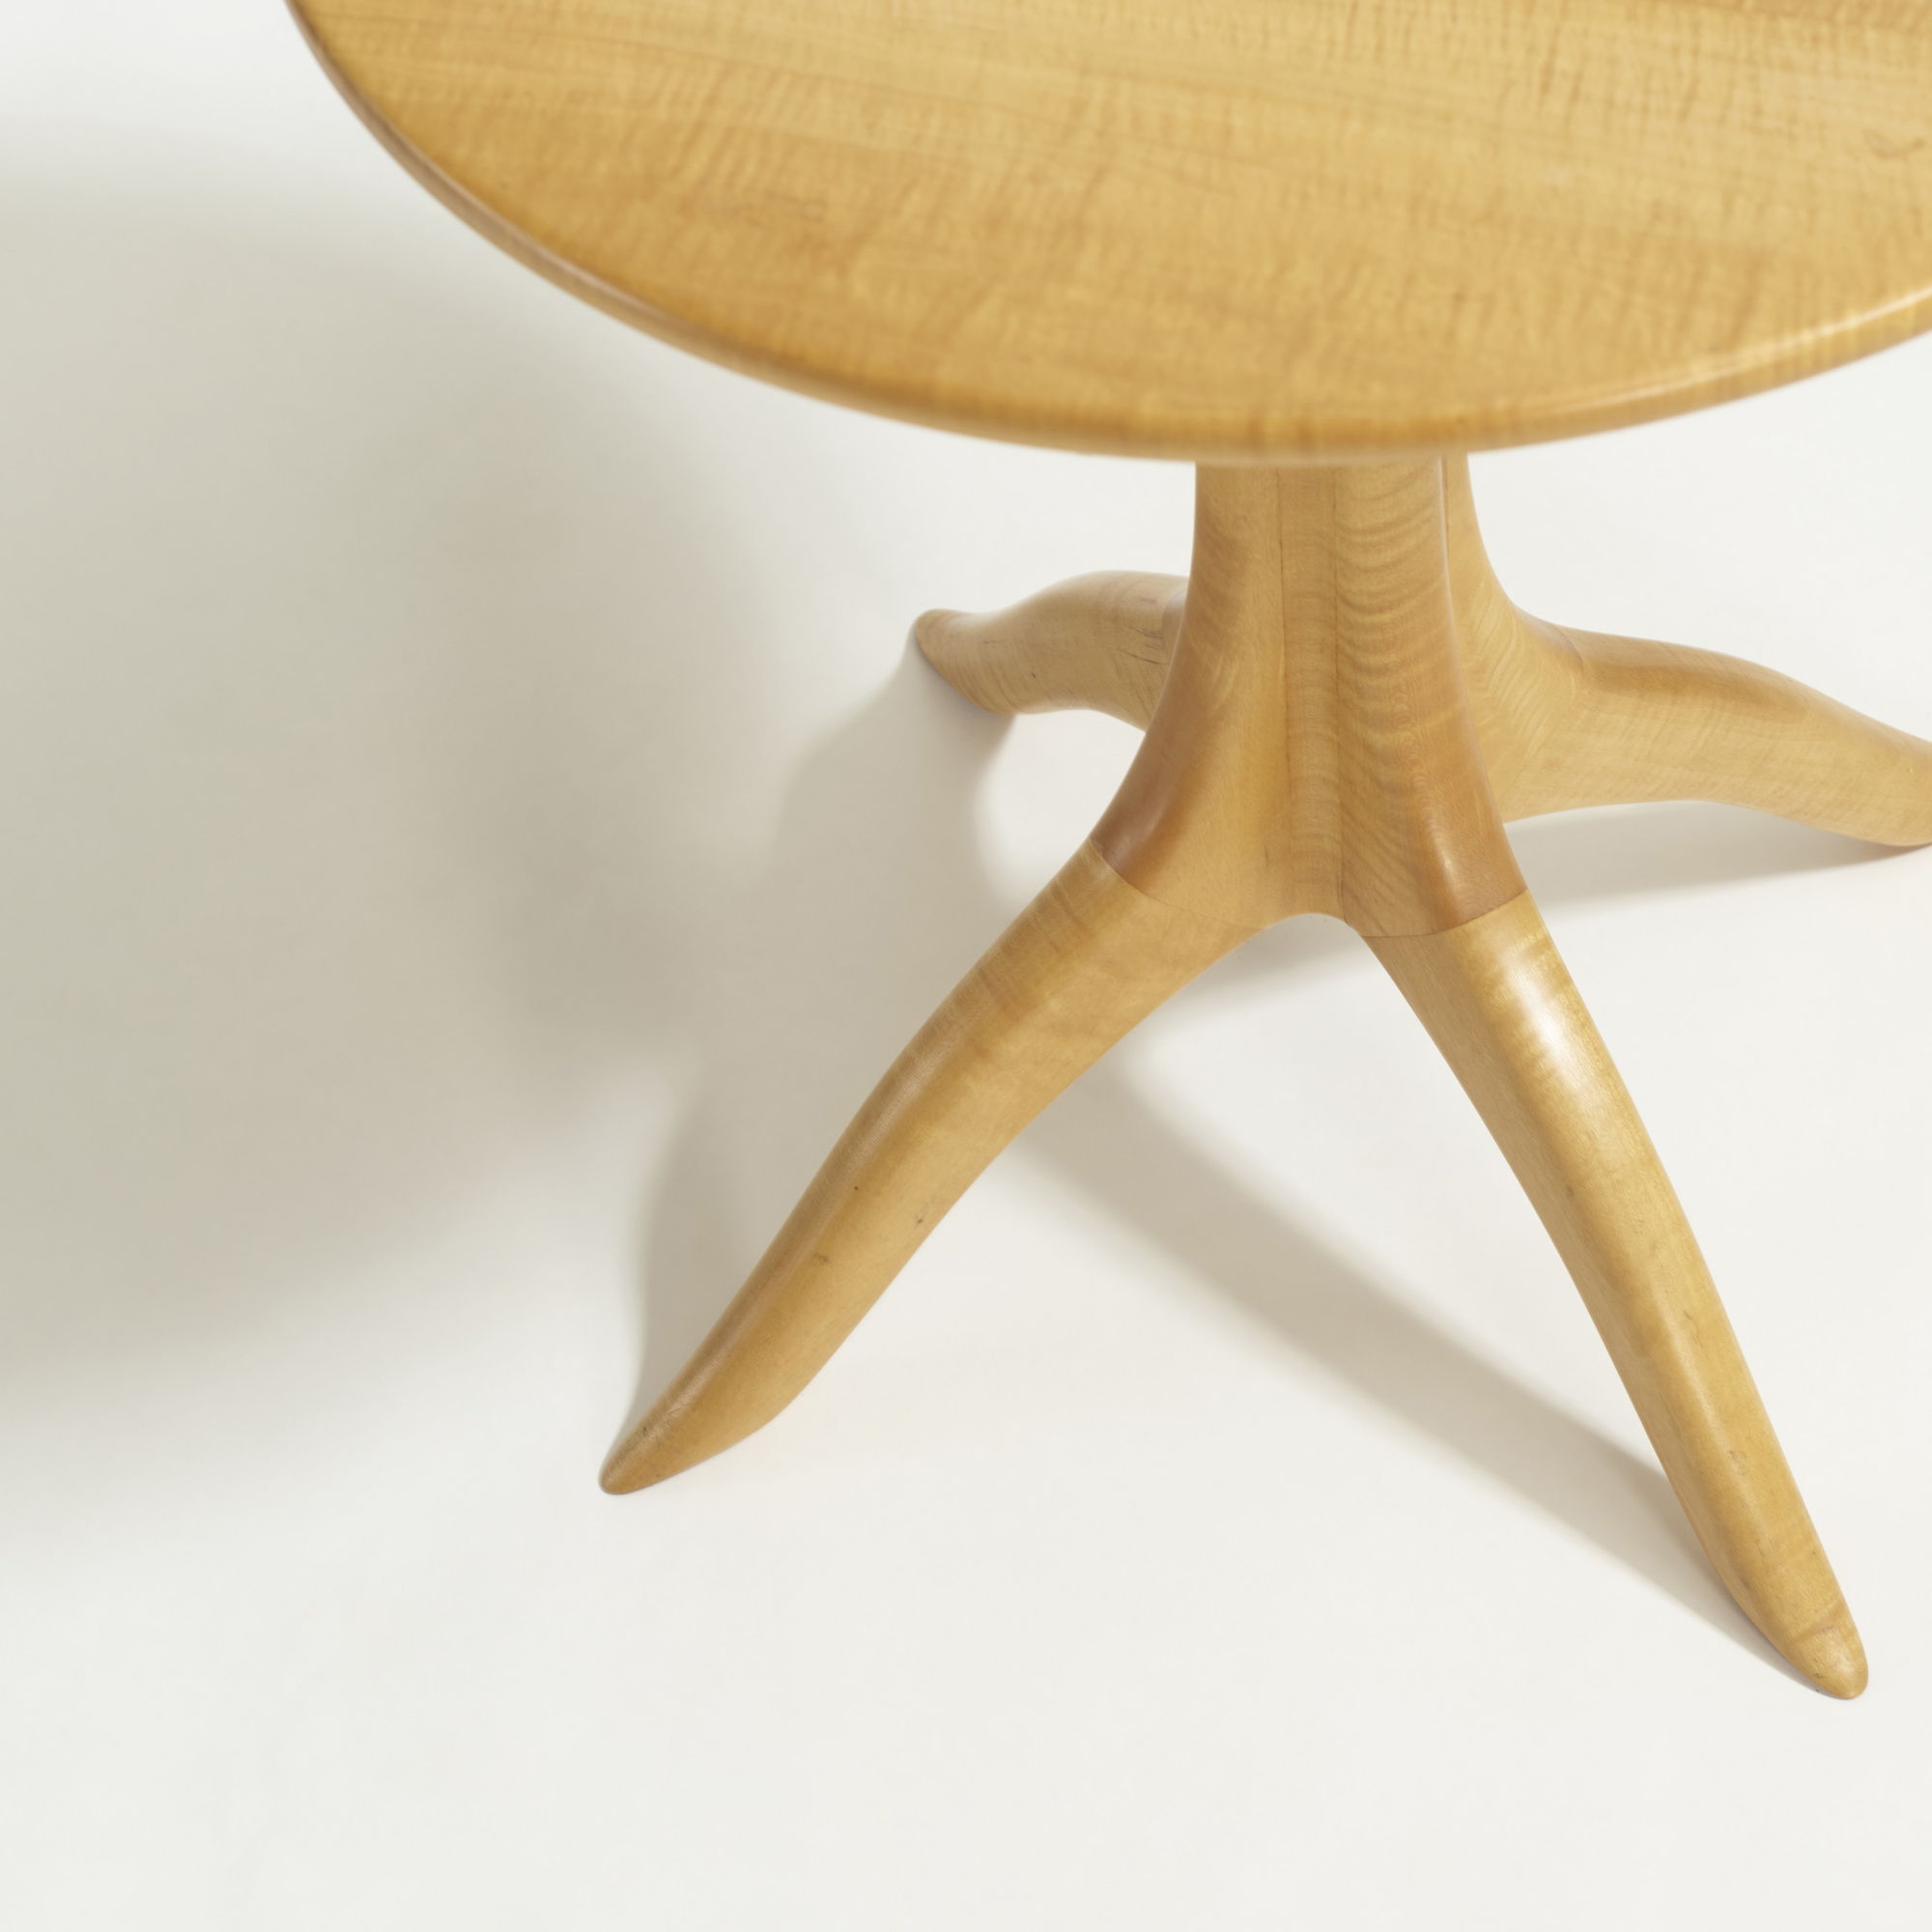 39: Sam Maloof / Pedestal table (3 of 4)